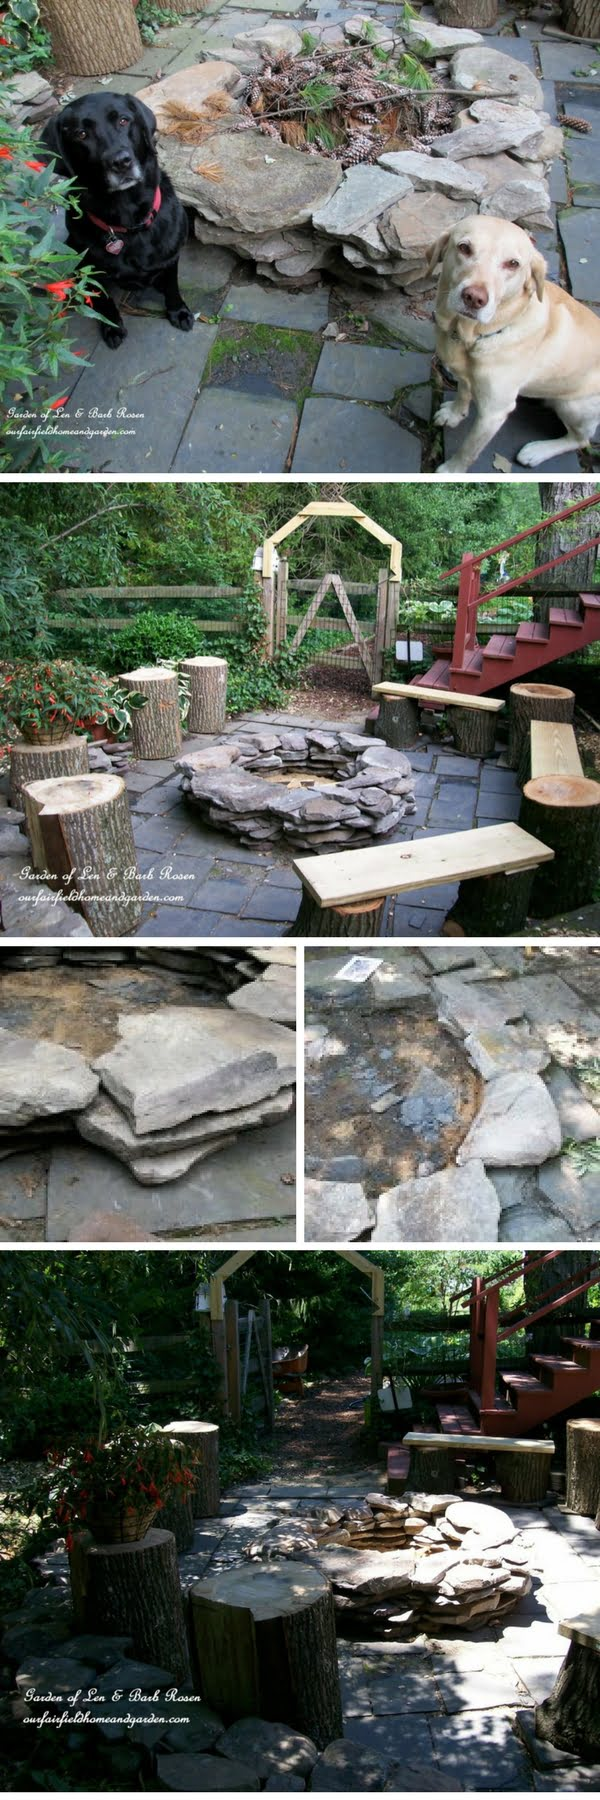 Check out the tutorial on how to make a DIY stacked stone fire pit